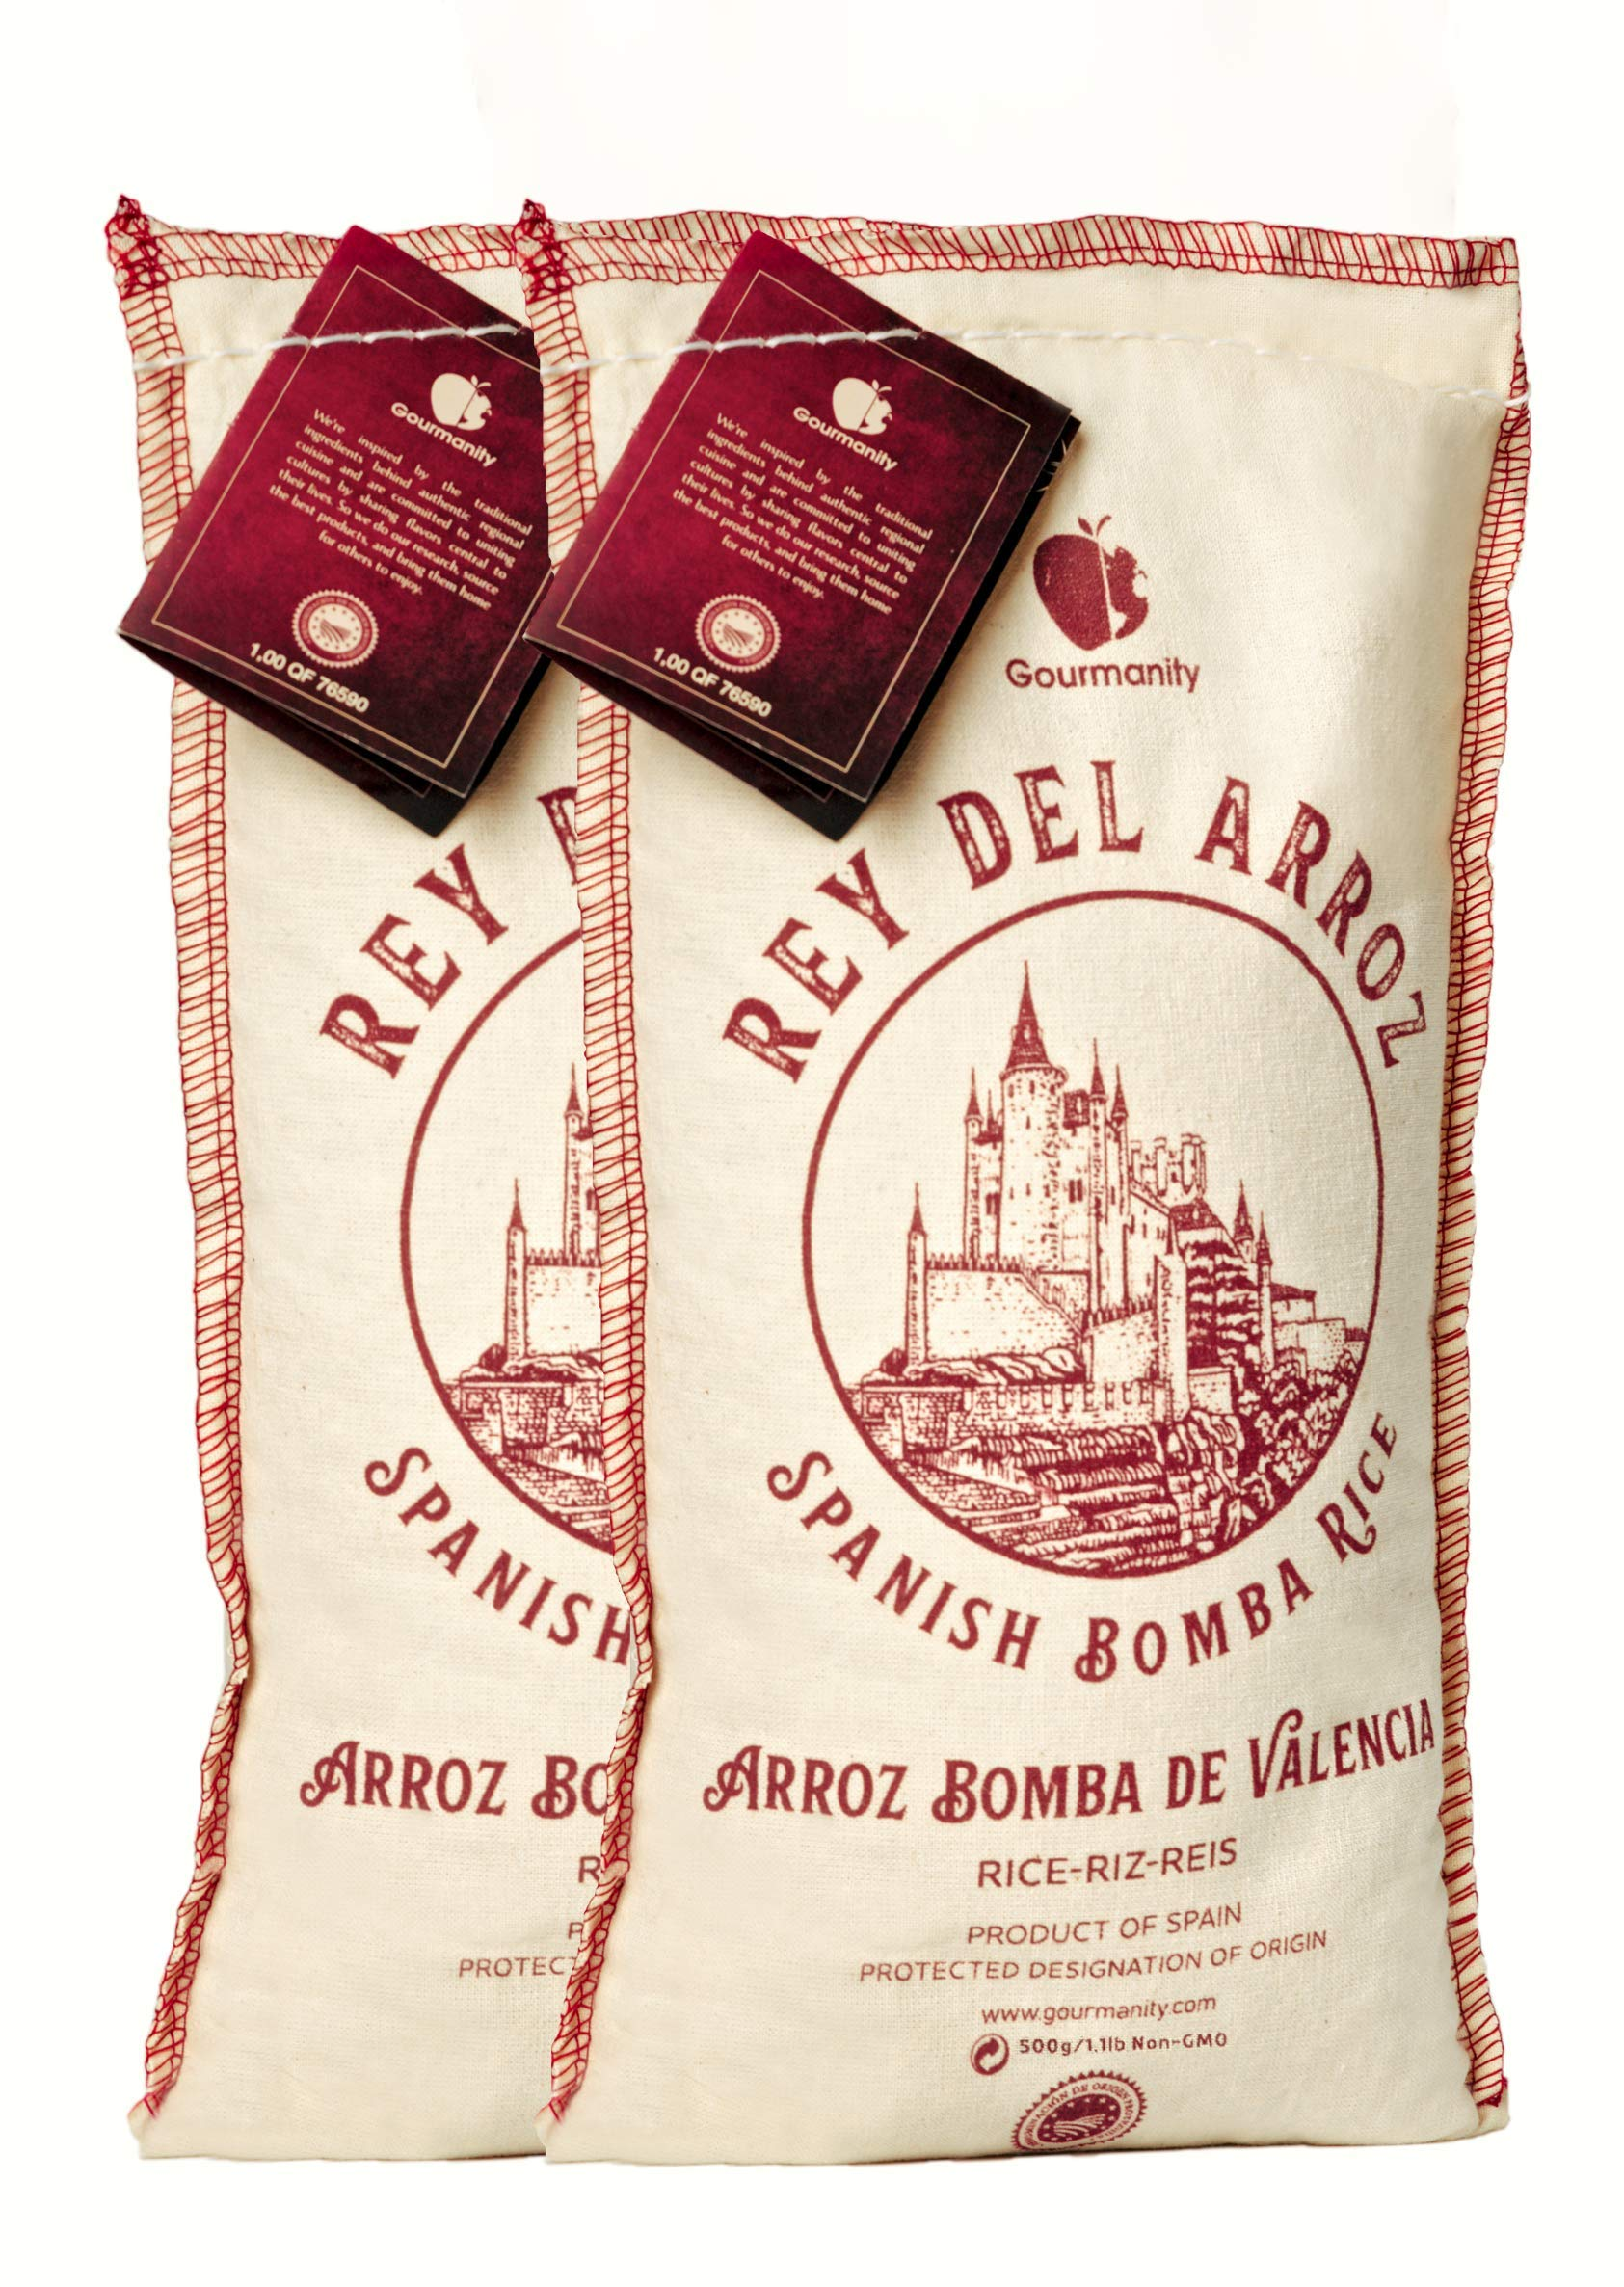 Gourmanity 500g (Pack of 2) Spanish BombaRicefor Paella, Rey del Arroz Authentic Spanish BombaRicefrom Spain